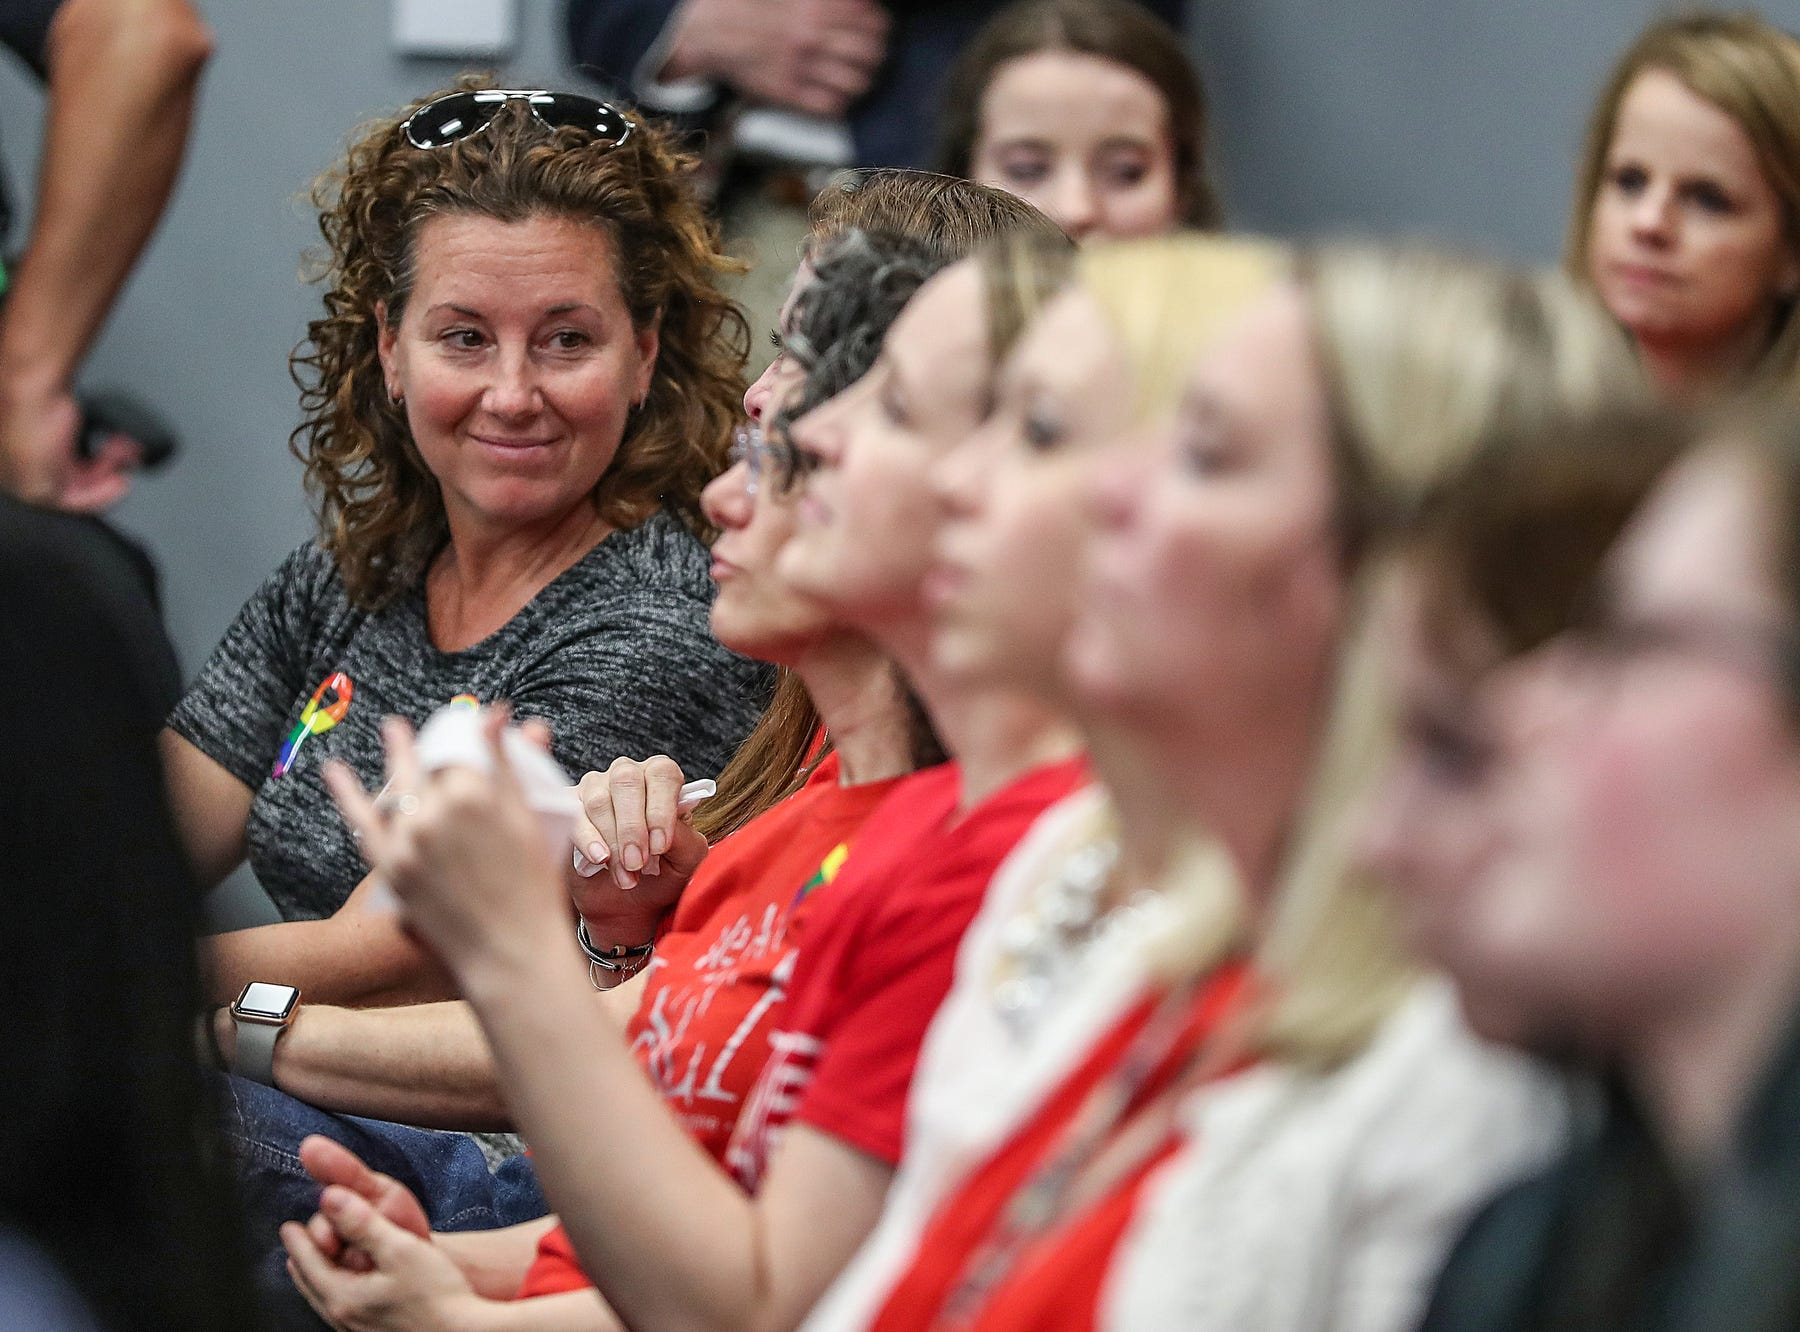 At left, Shelly Fitzgerald, the Roncalli counselor who was disciplined for her same-sex marriage, attends the Hamilton Southeastern Schools board meeting at Cumberland Road Elementary in Fishers, Ind., Wednesday, May 8, 2019. The board voted 5-2 to adopt an anti-discrimination policy including language specifically prohibiting discrimination and harassment based on gender identity and sexual orientation.